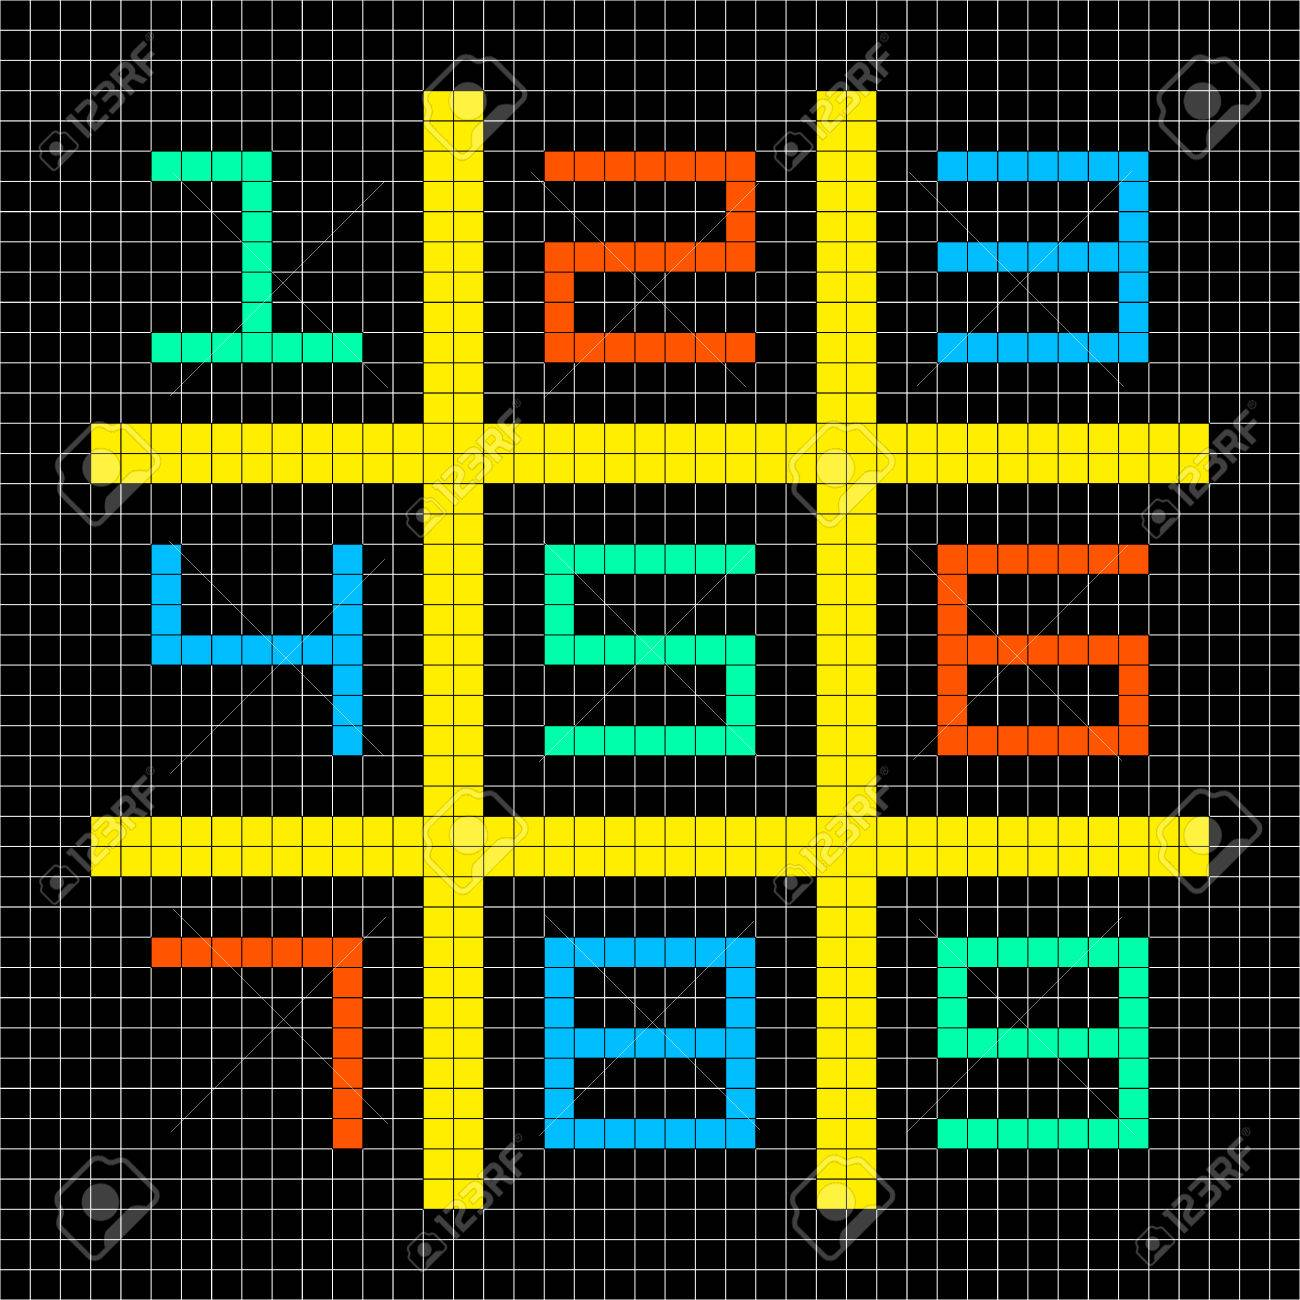 8 Bit Pixel Art With Numbers 1 9 In A Sudoku Grid Assets Separated Royalty Free Cliparts Vectors And Stock Illustration Image 23292139